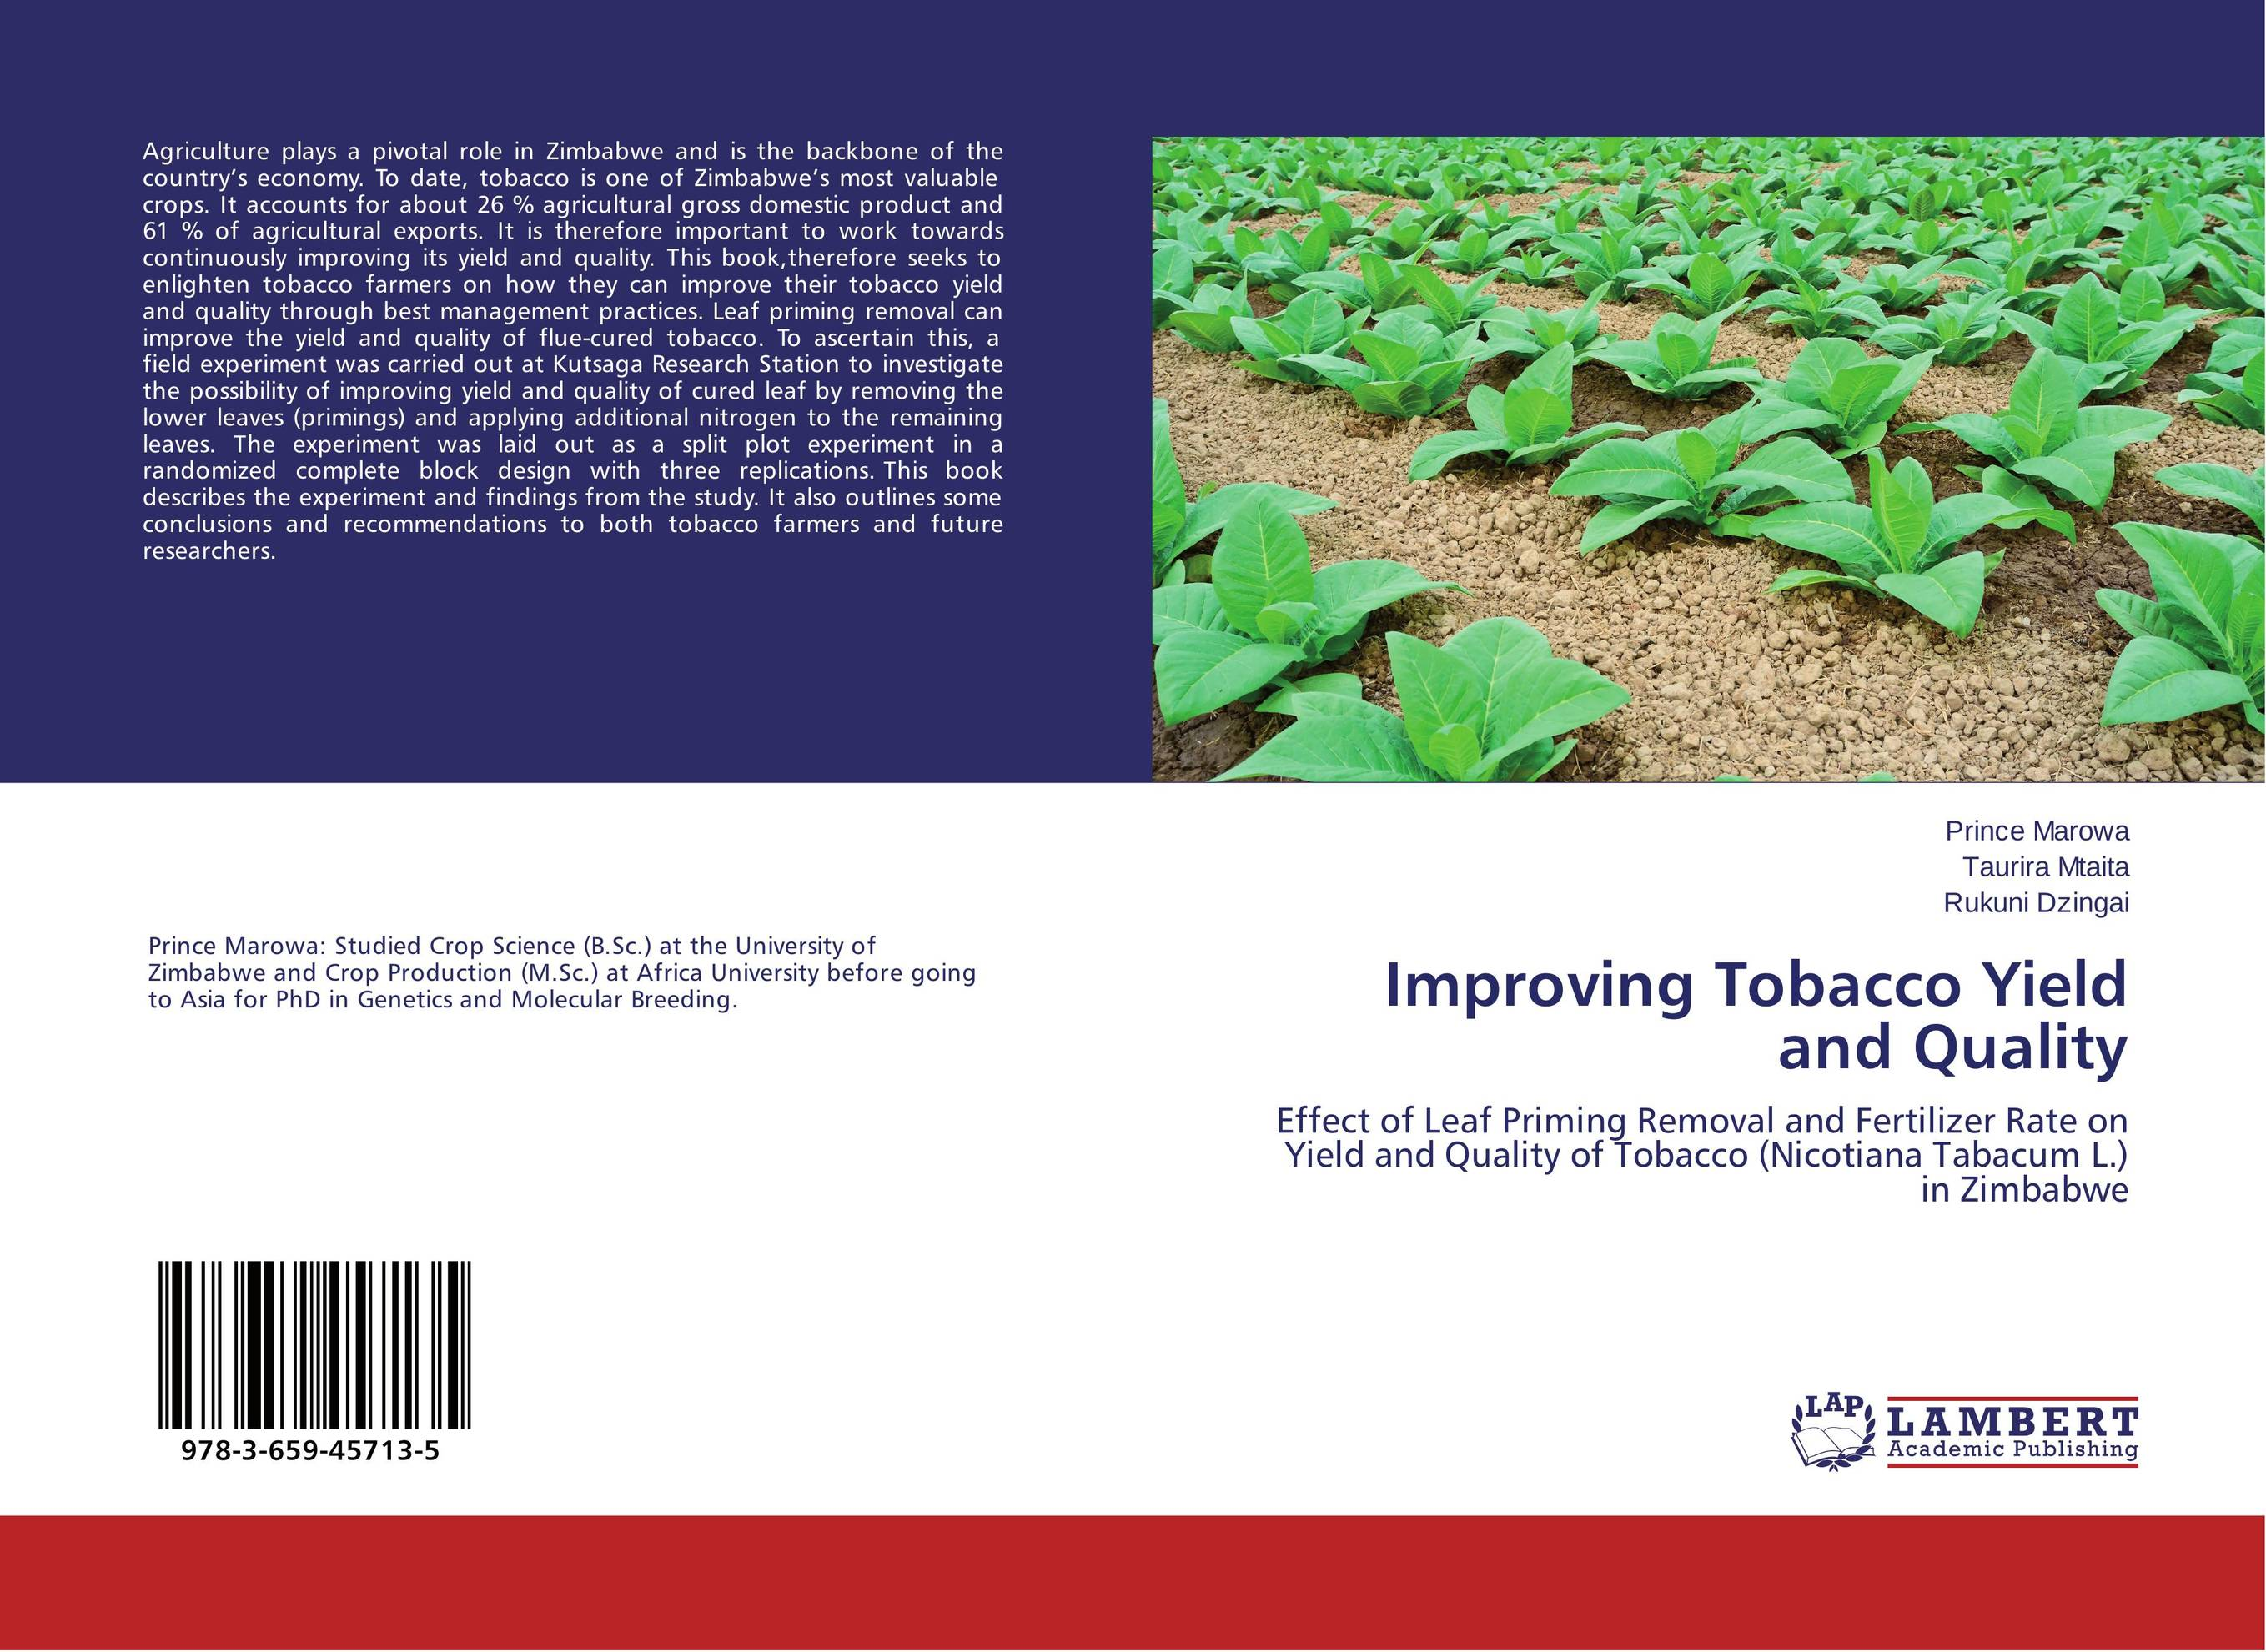 Improving Tobacco Yield and Quality